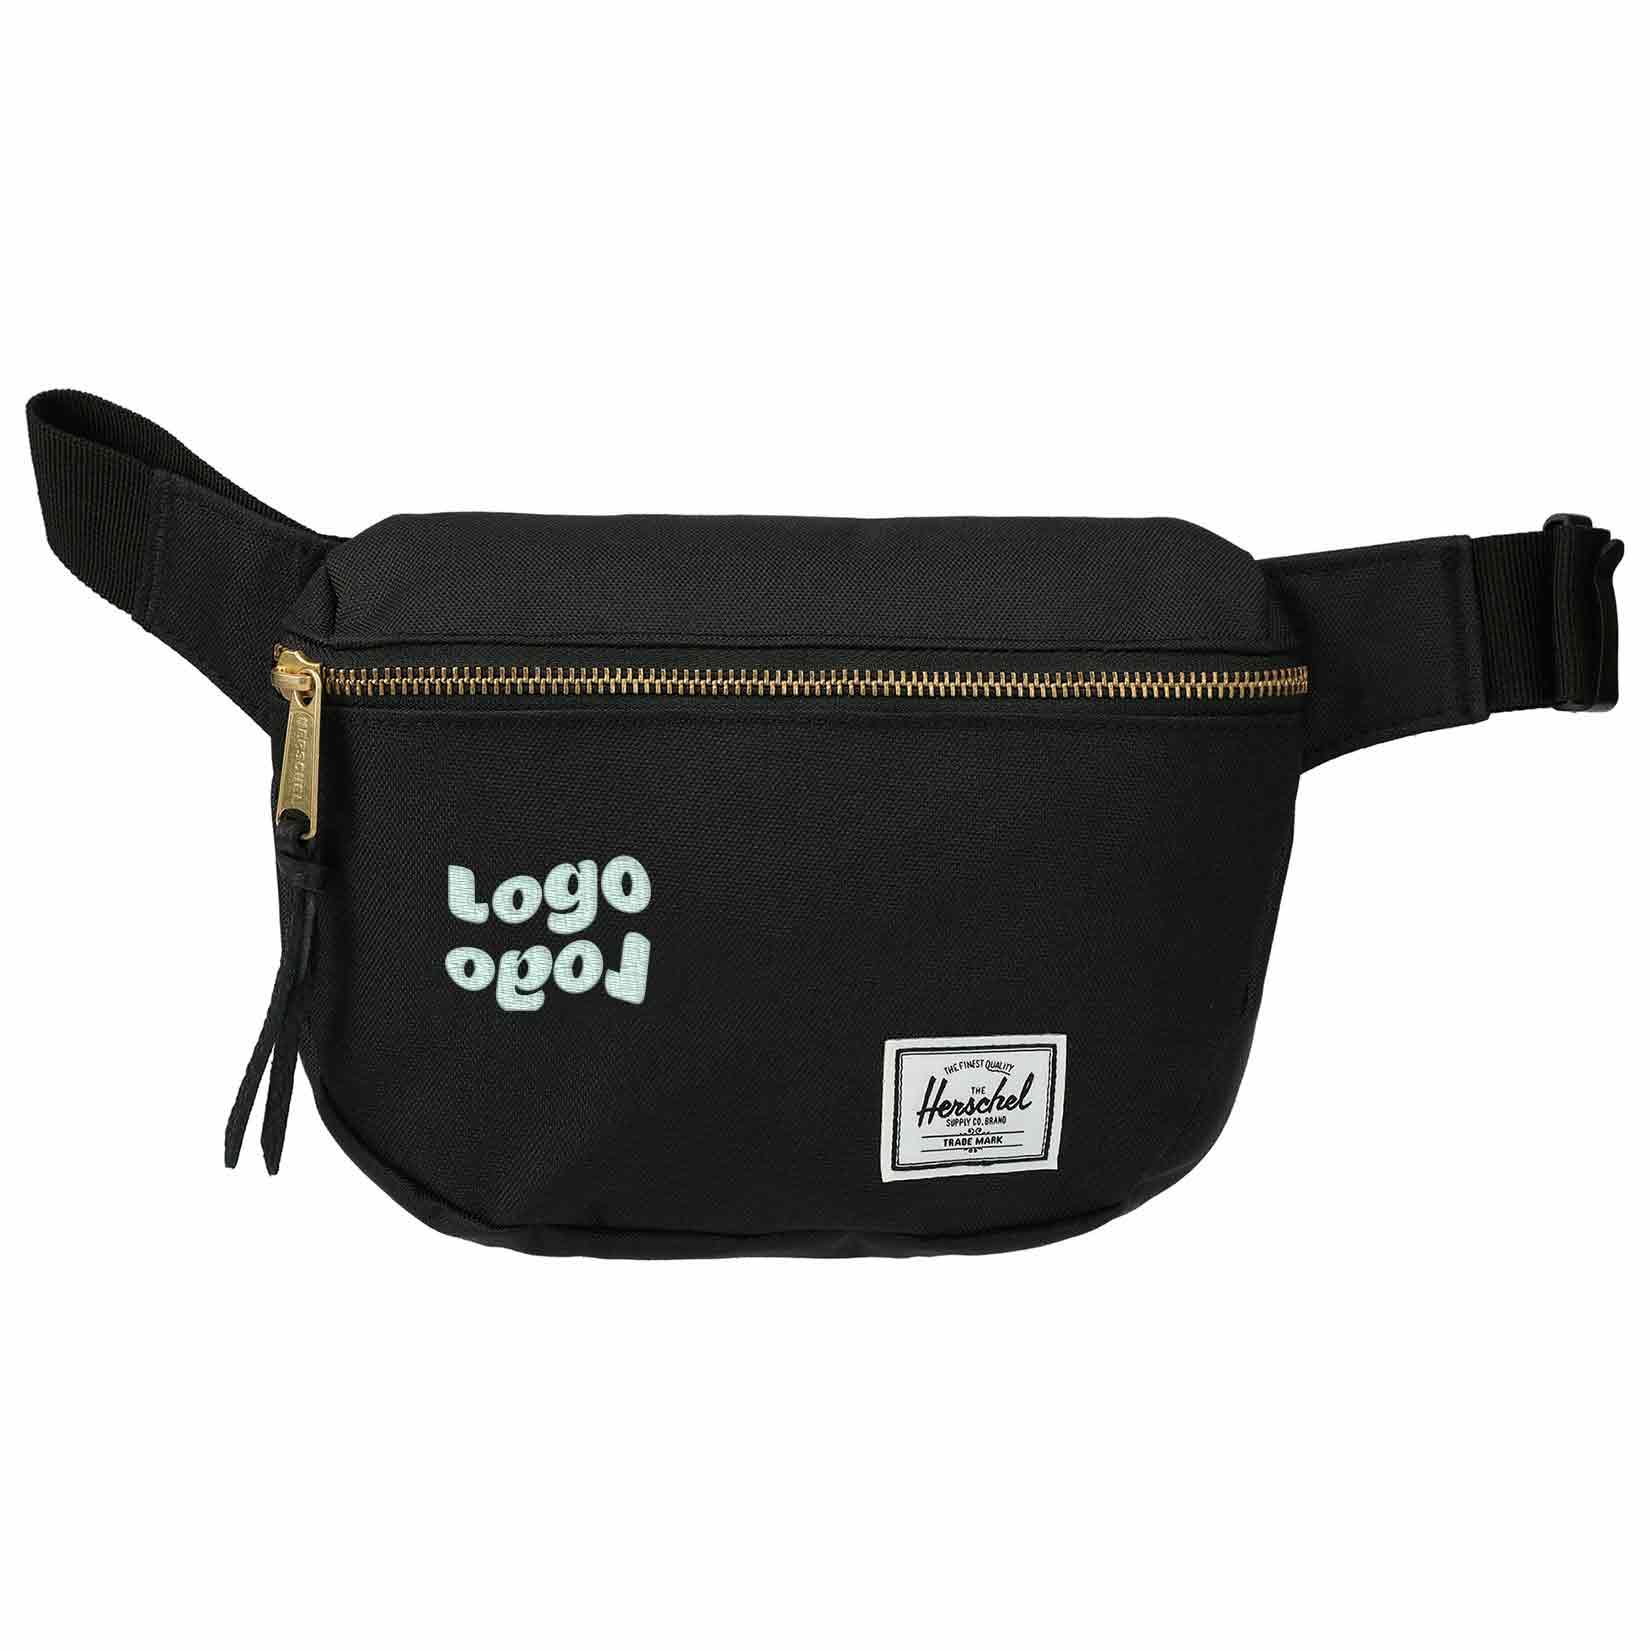 267953 fifteen hip pack one color heat transfer or embroidery centered on front pocket left of herschel tag between tag seam 2 50 h x 2 50 w